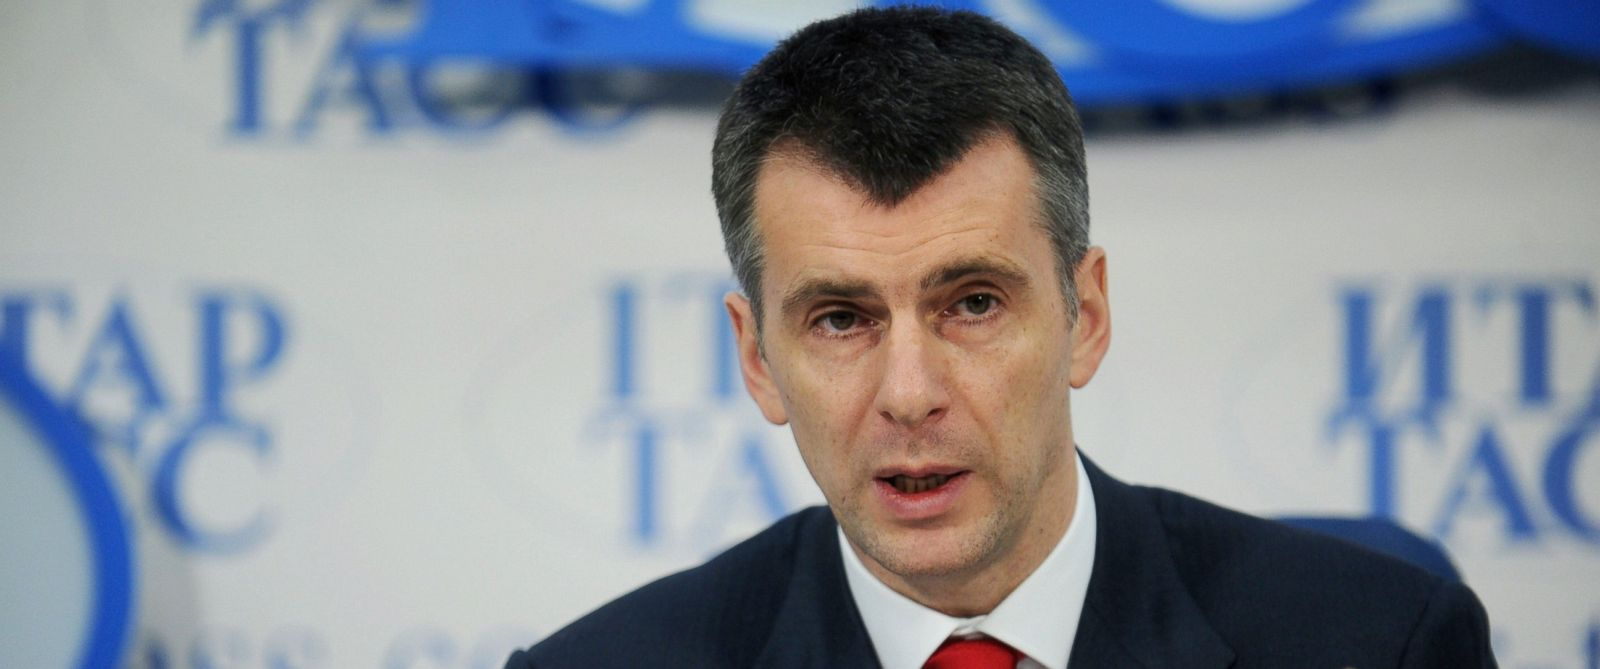 PHOTO: Civil Platform party leader Mikhail Prokhorov speaks during a press conference in Moscow, Dec. 21, 2012.